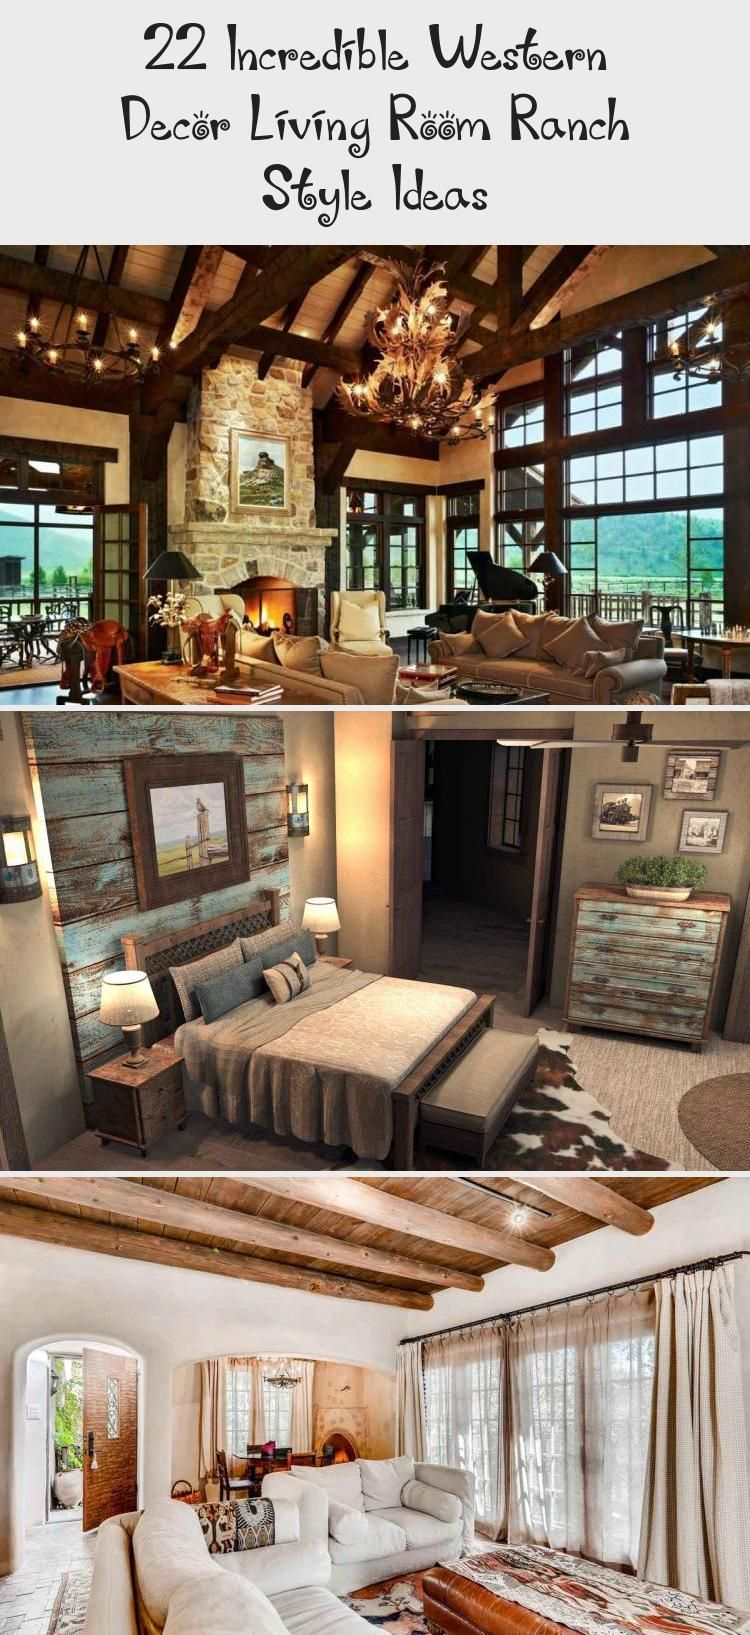 22 Incredible Western Decor Living Room Ranch Style Ideas Babyzimmer In 2020 Living Decor Western Decor Affordable Living Room Furniture #western #theme #living #room